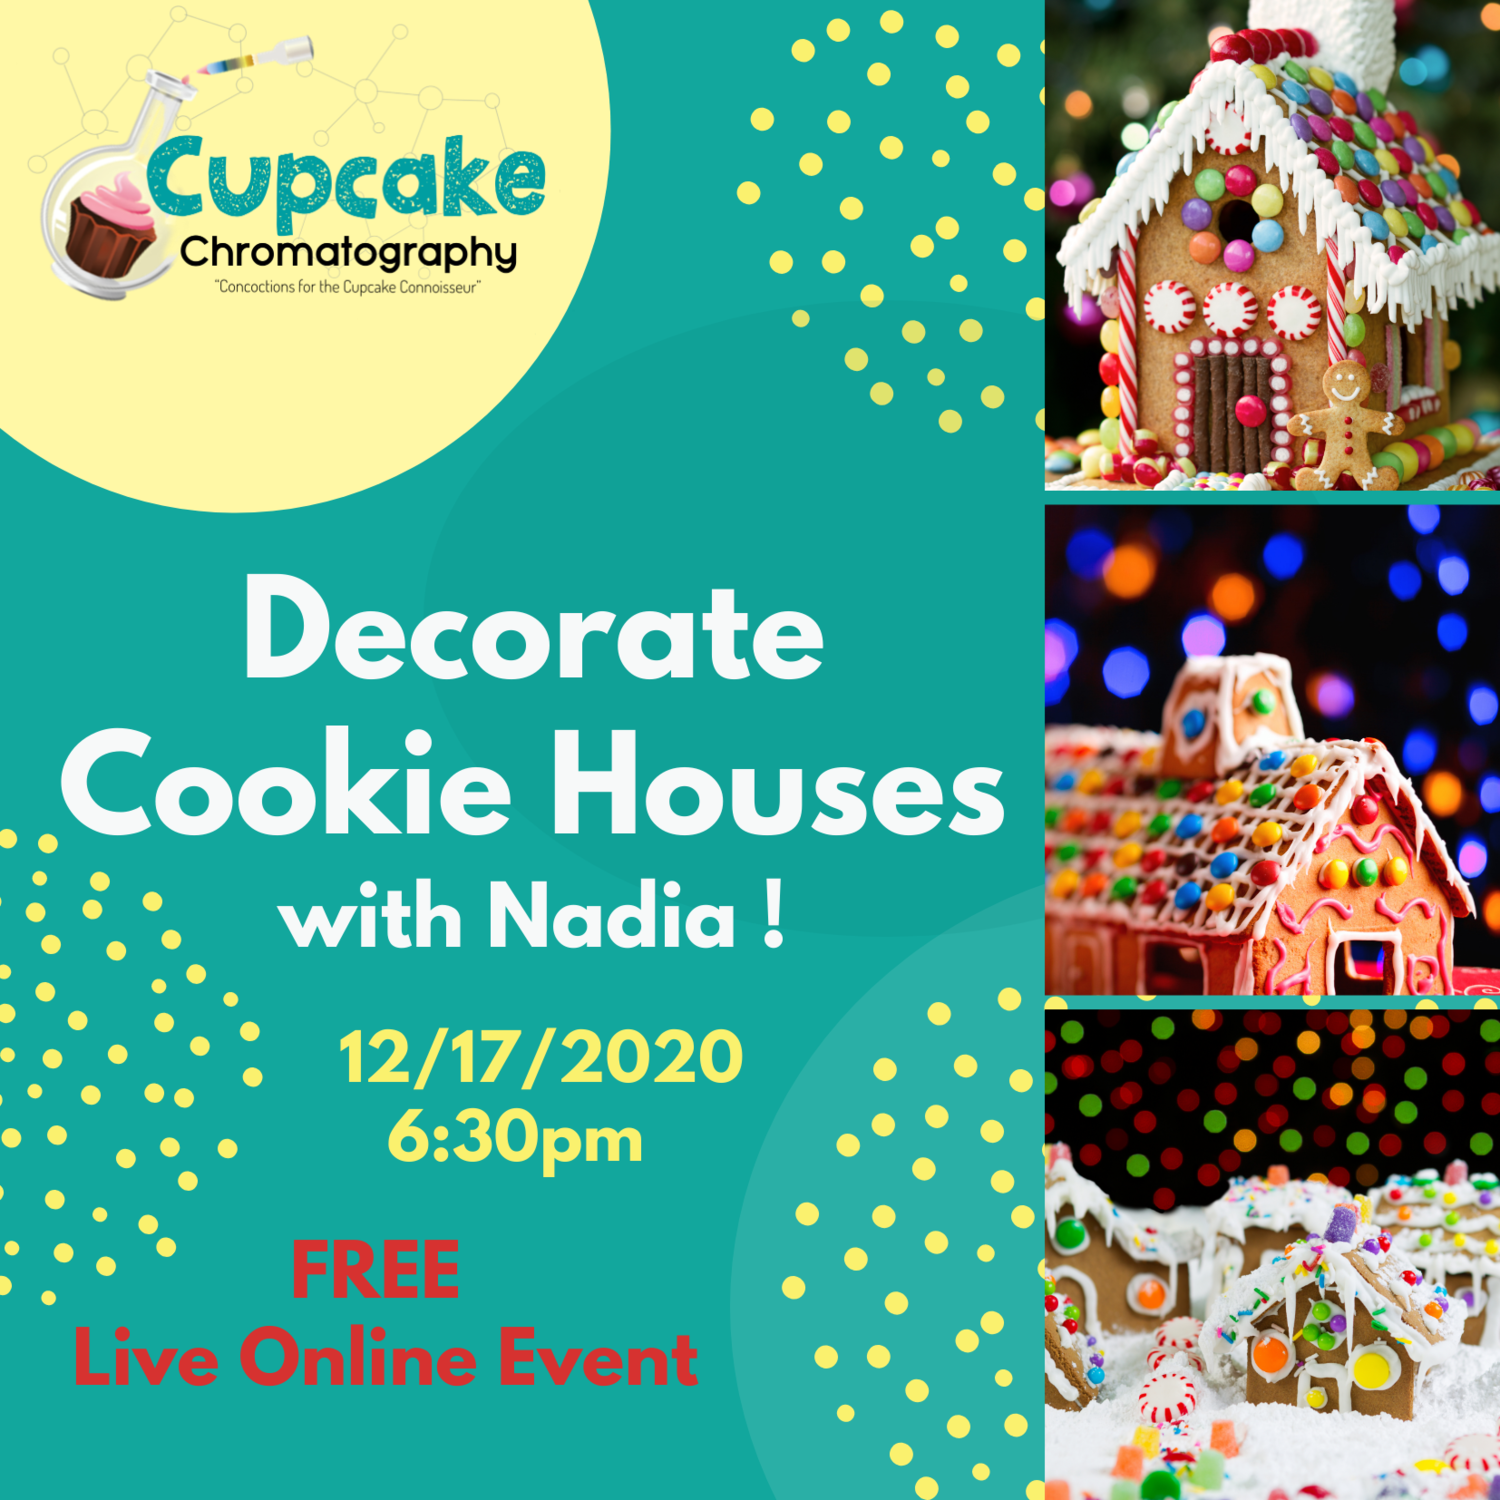 Decorate Cookie Houses with Nadia! 12/17/2020